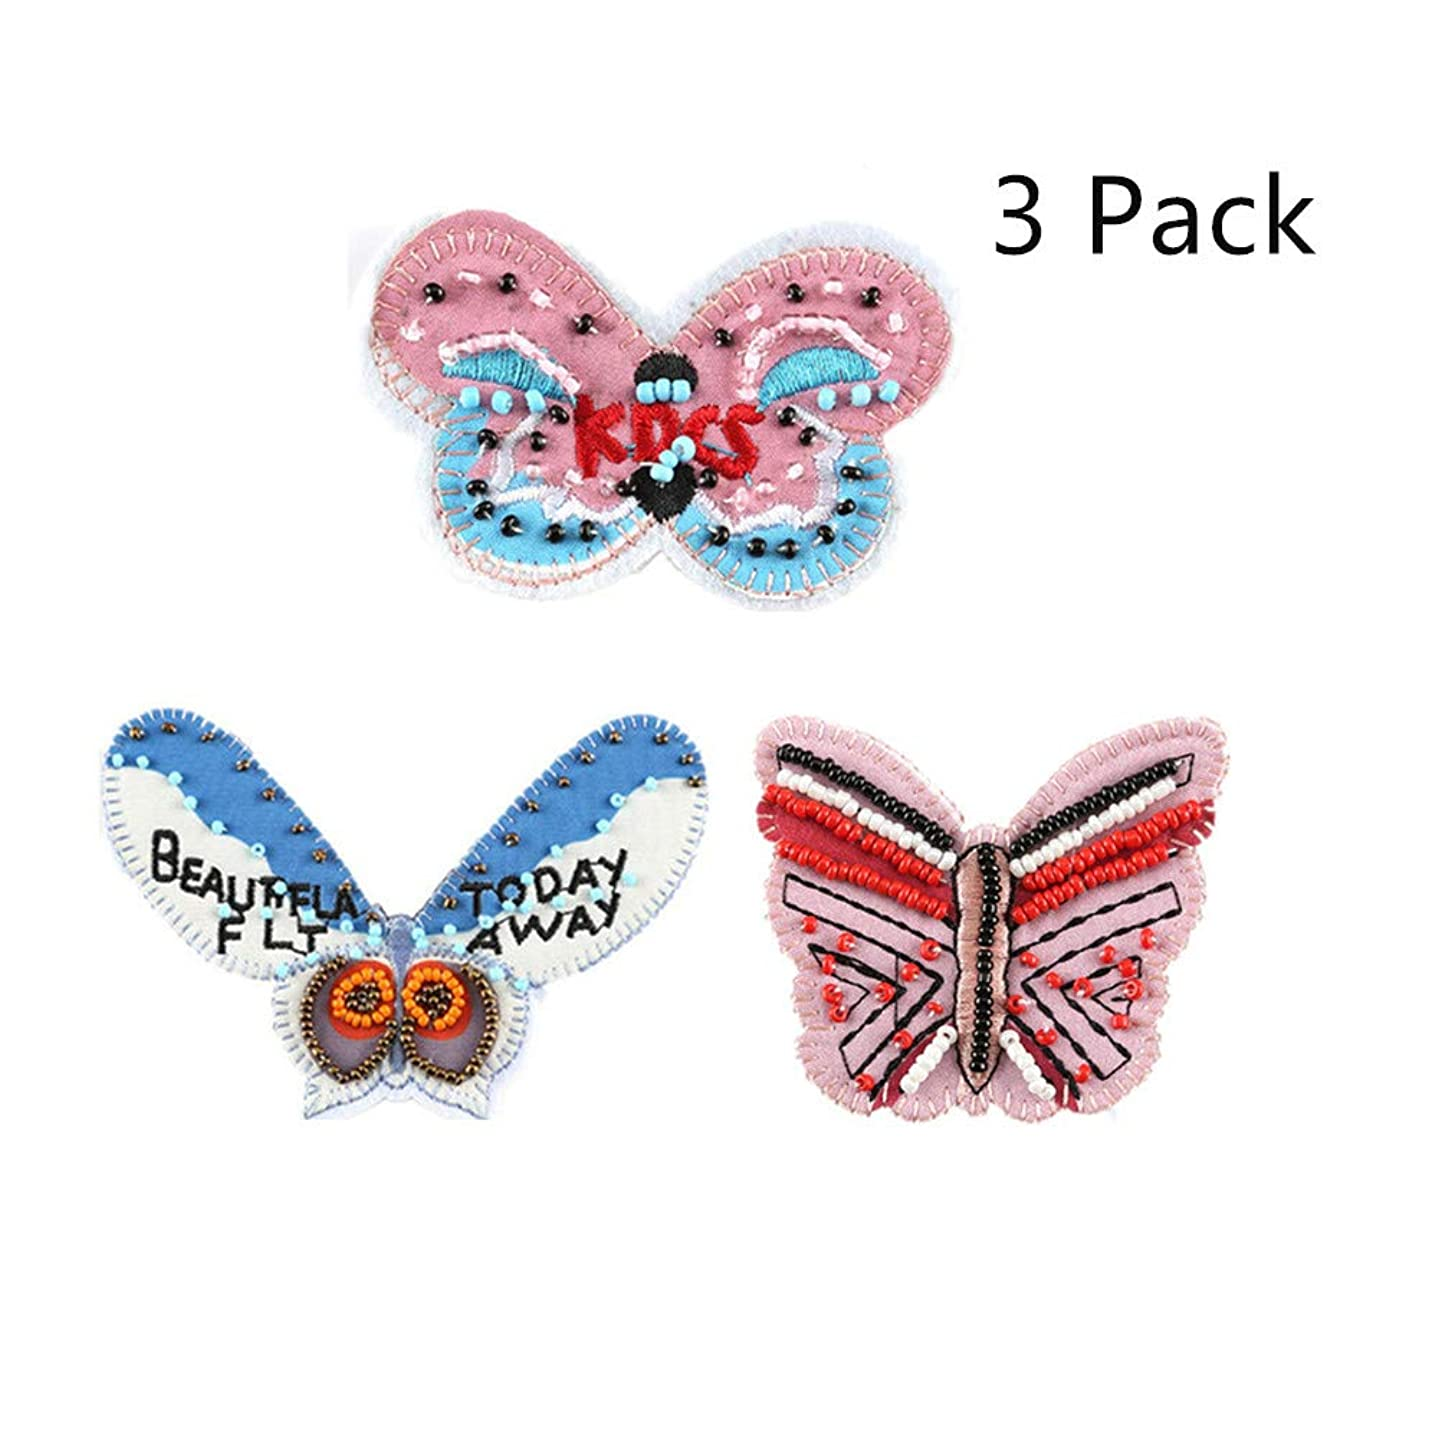 Iron On Patches, 3D Handmade Colour Beaded Butterfly Applique DIY Accessories Motif Applique Kit Sew On Patches for Jackets, Jeans, Clothing, Backpacks for Children Child Girls -3 Pack